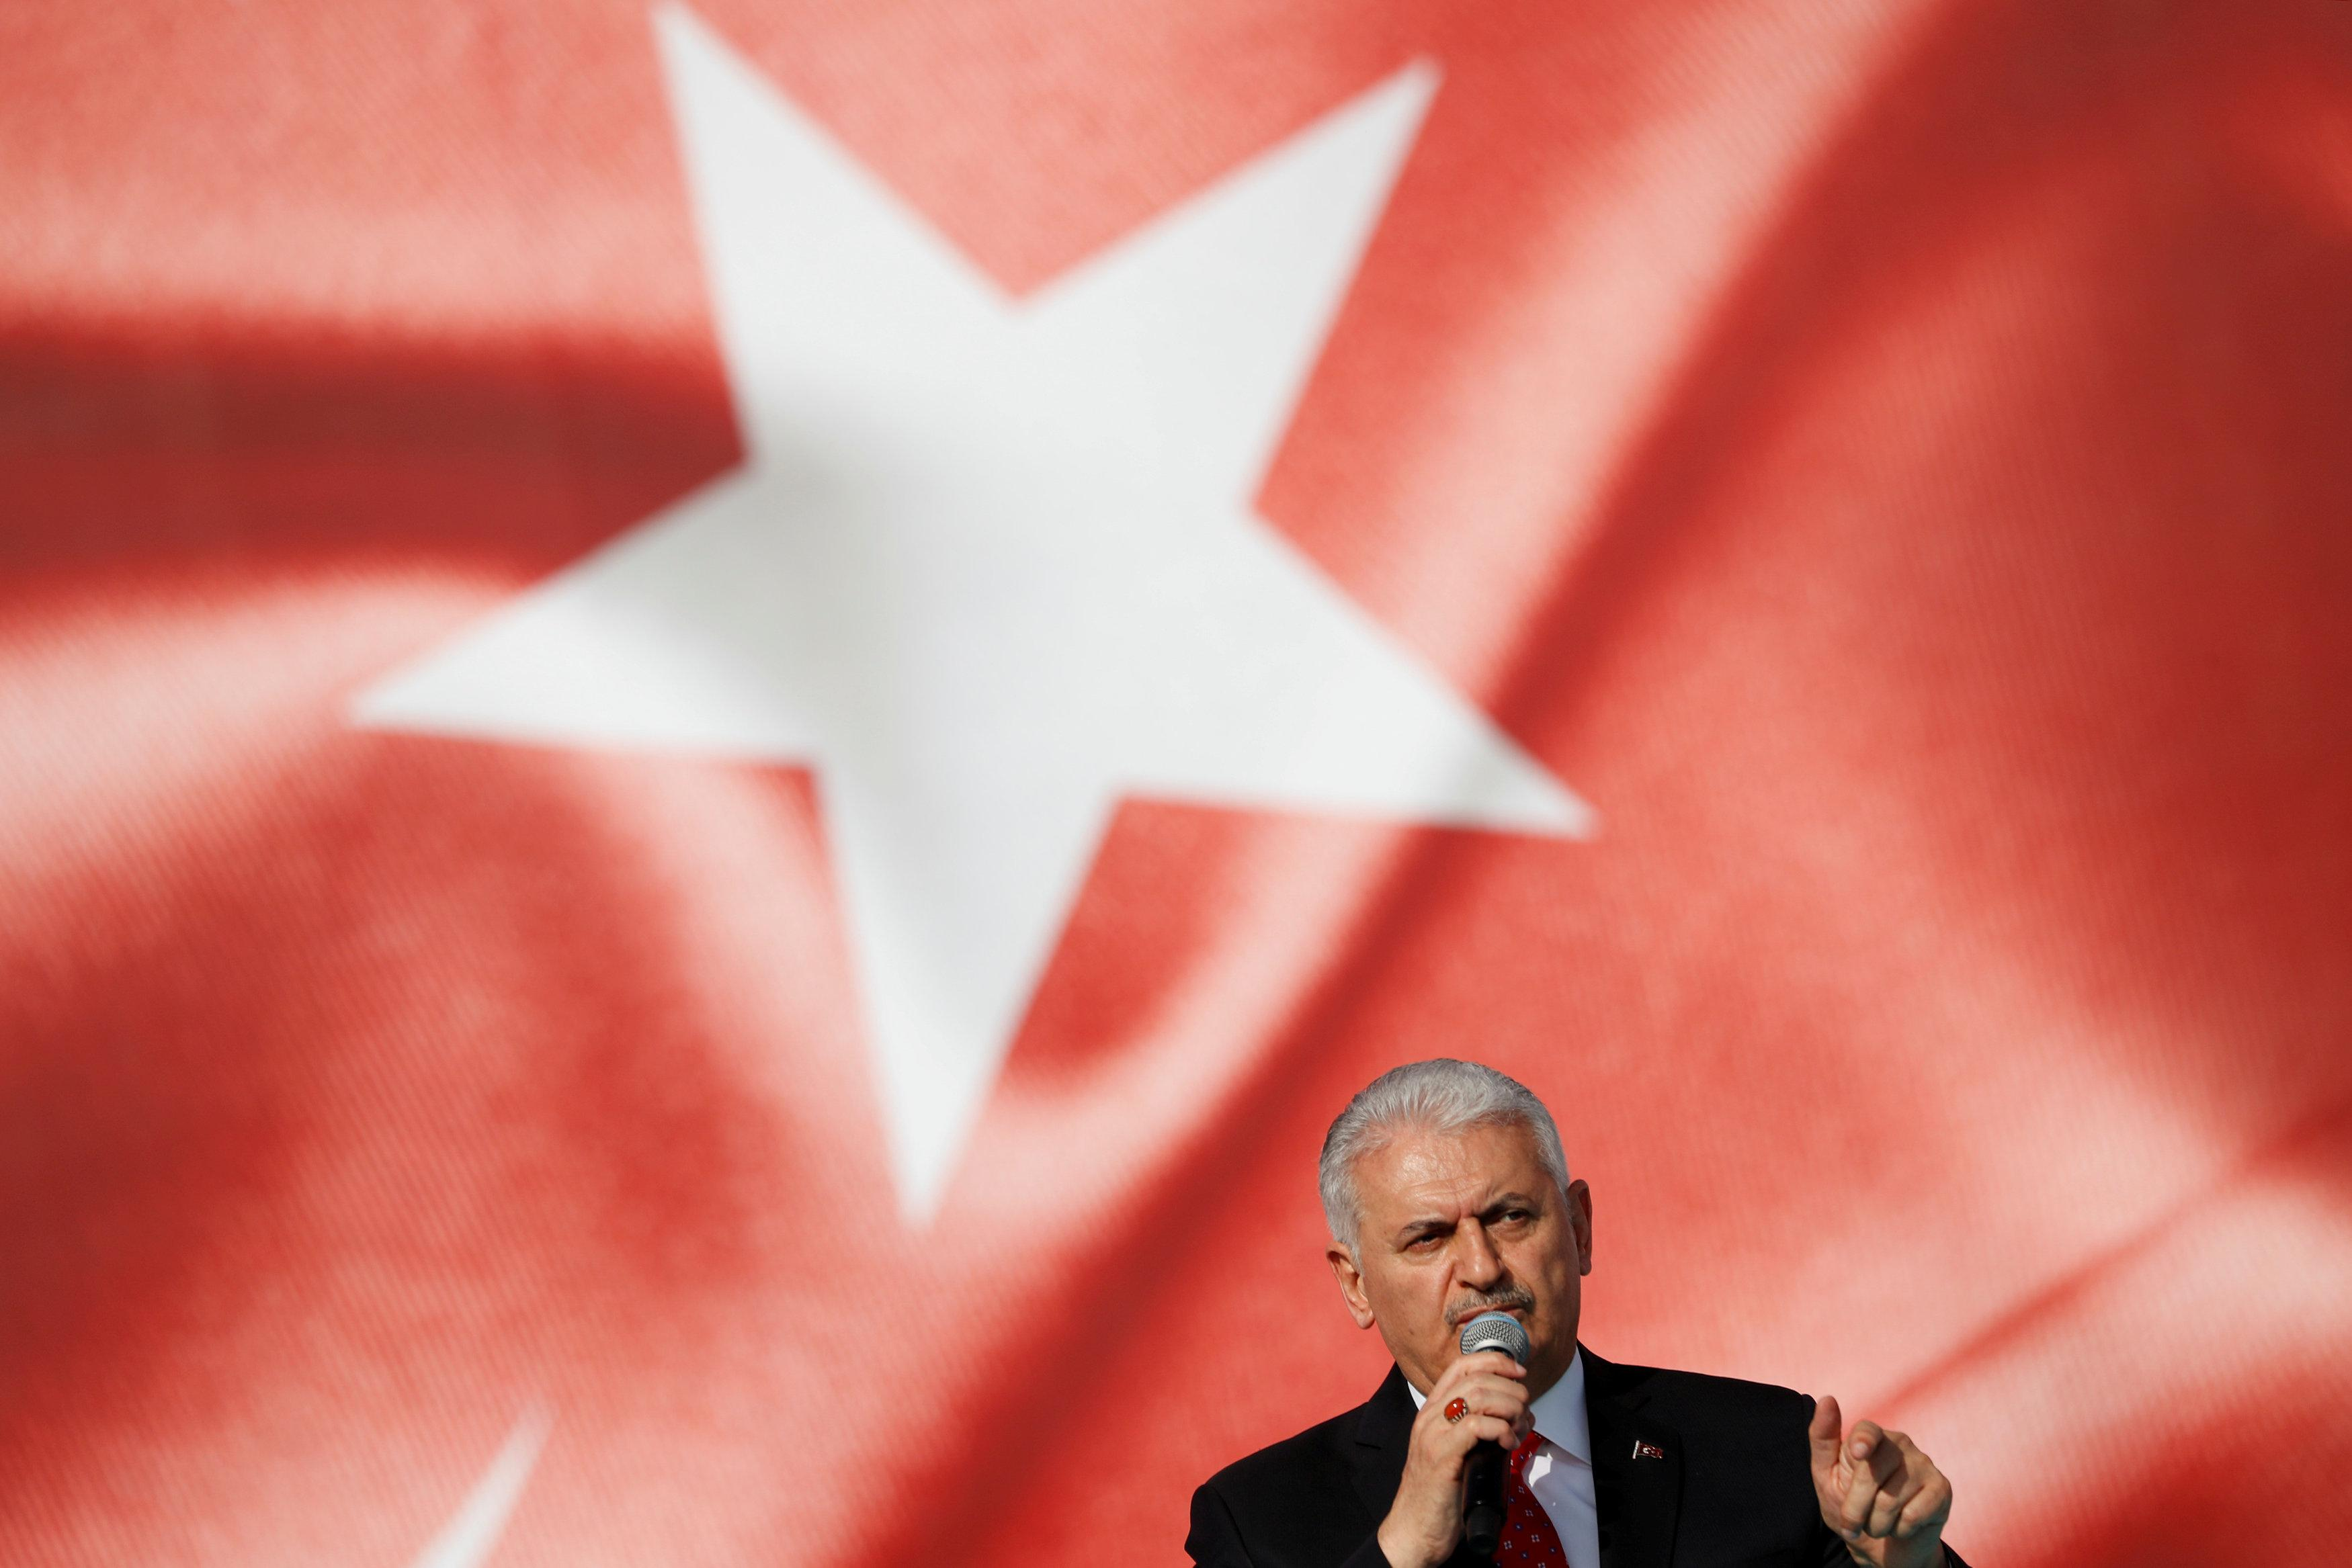 Turkish Prime Minister Binali Yildirim delivers a speech in Istanbul, Turkey May 18, 2018. Murad Sezer